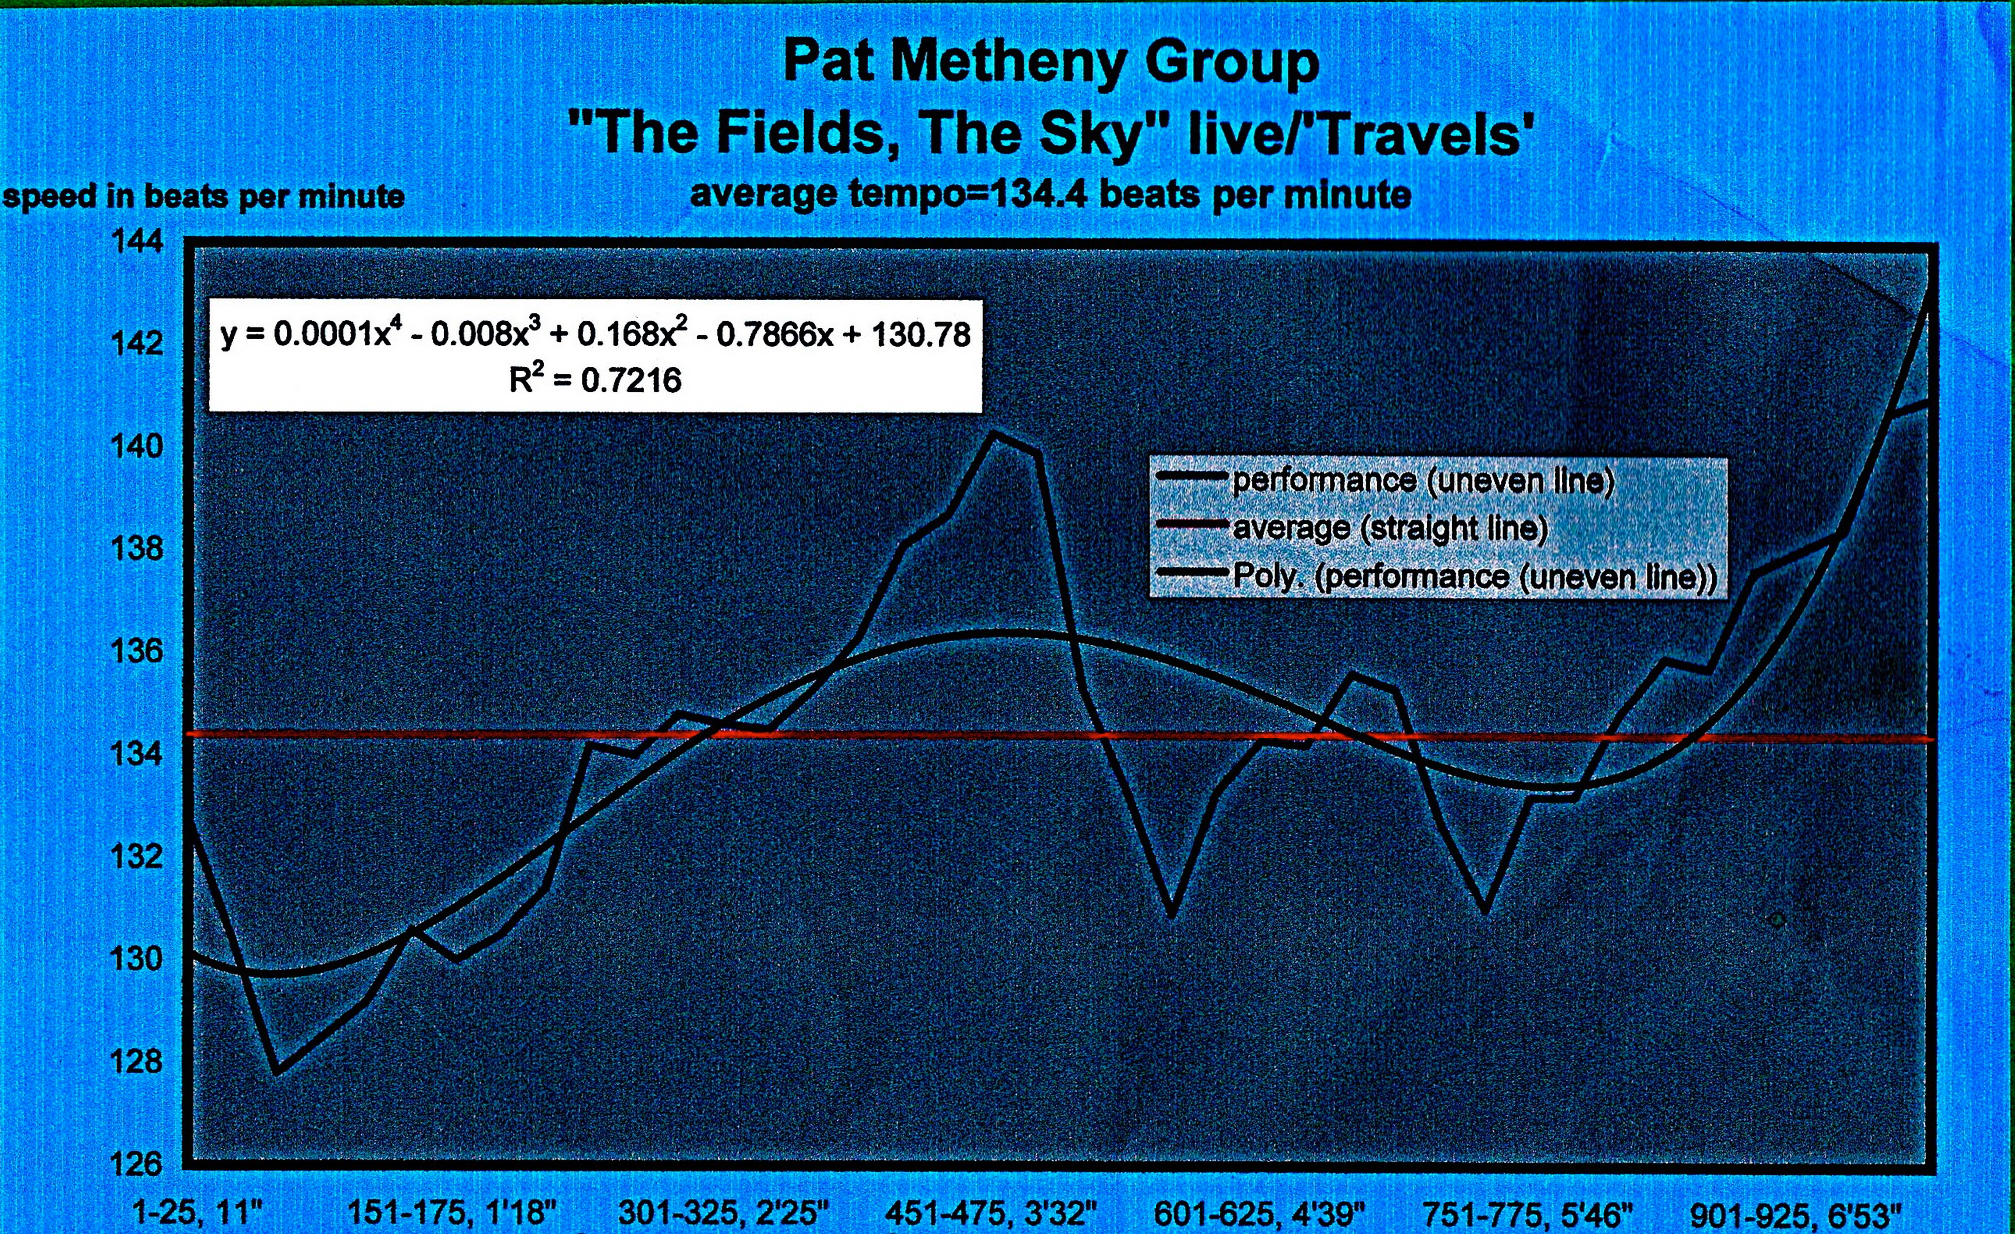 PAT_METHENY-THE_FIELDS_THE_SKY-meanspeed school modern tempo map - 134.4 BPM_2